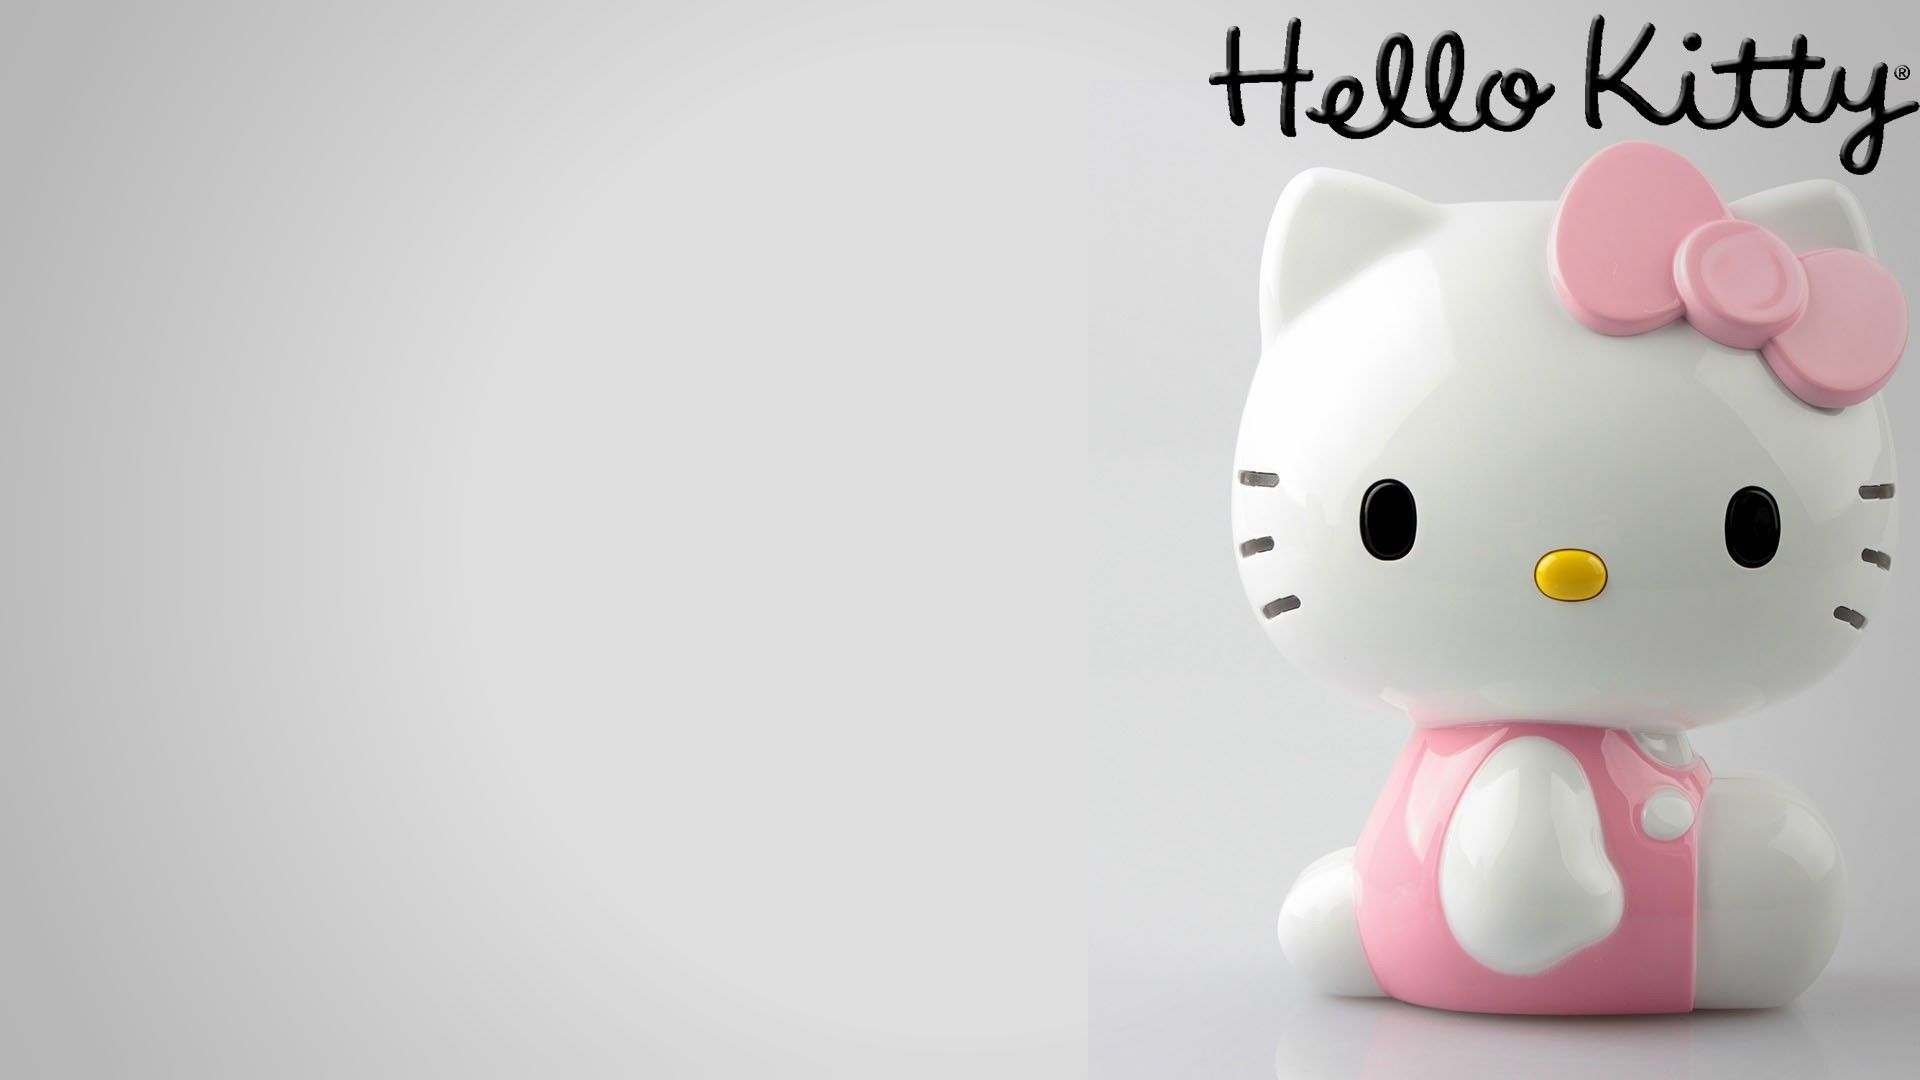 1920x1080 wallpaper 3d hello kitty hello kitty pictures - Free HD ...